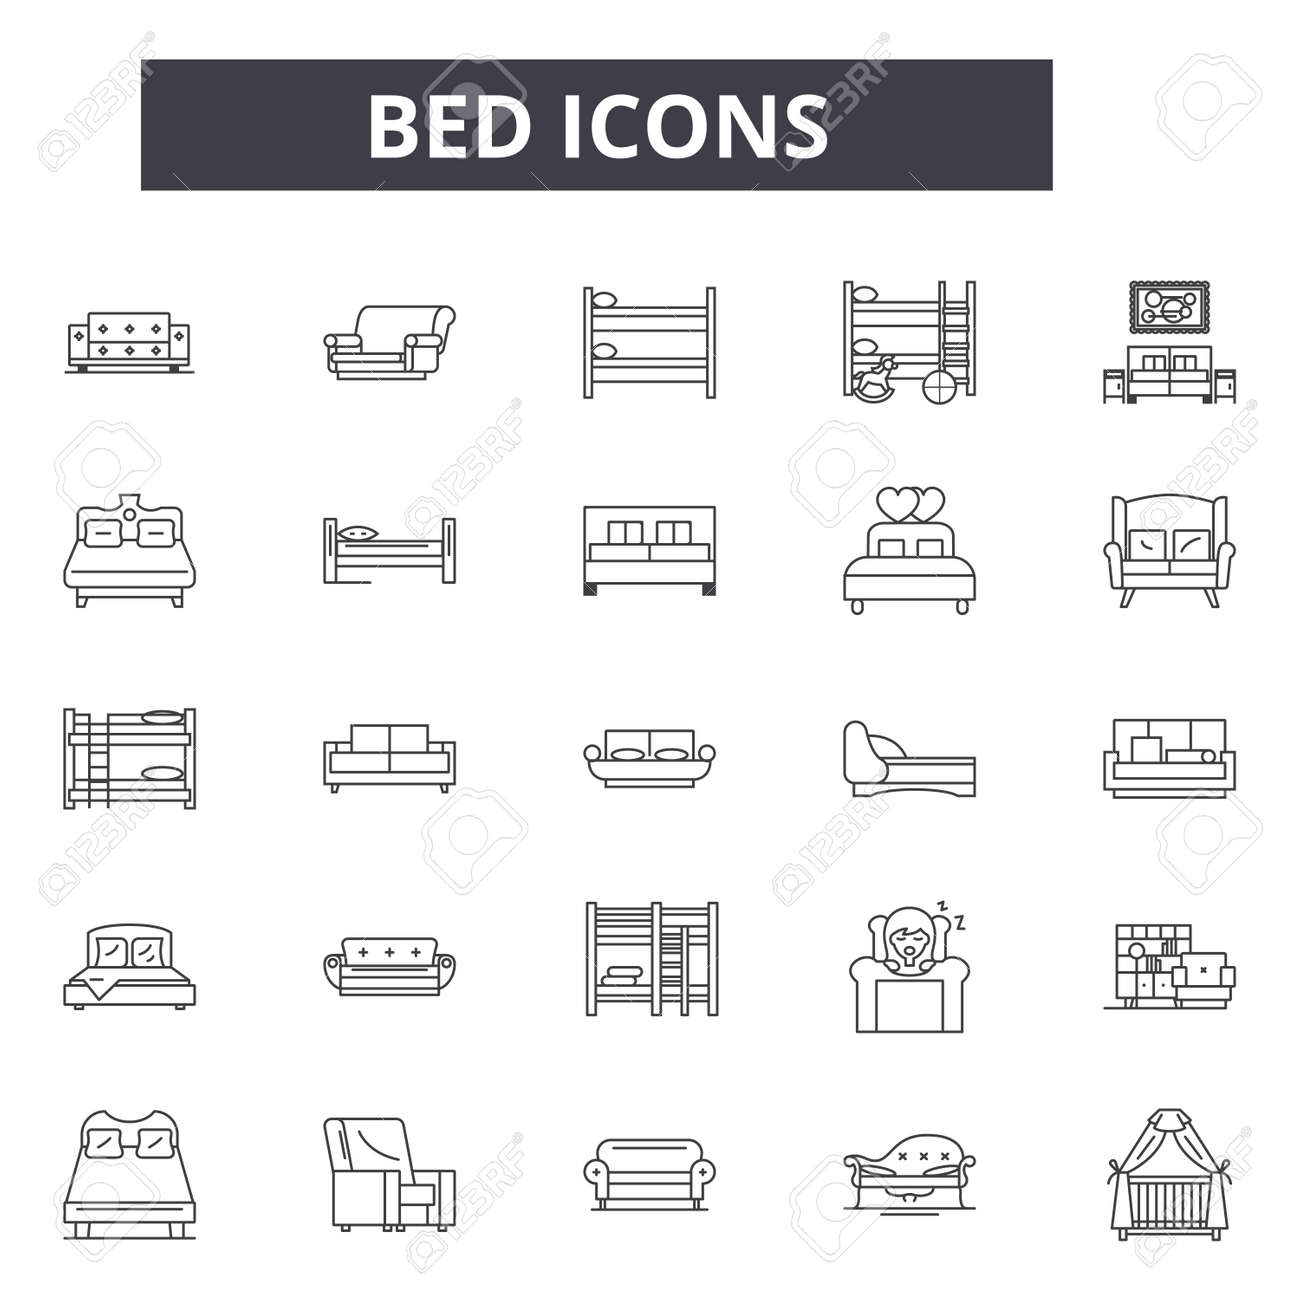 Bed line icons for web and mobile. Editable stroke signs. Bed outline concept illustrations - 119392089